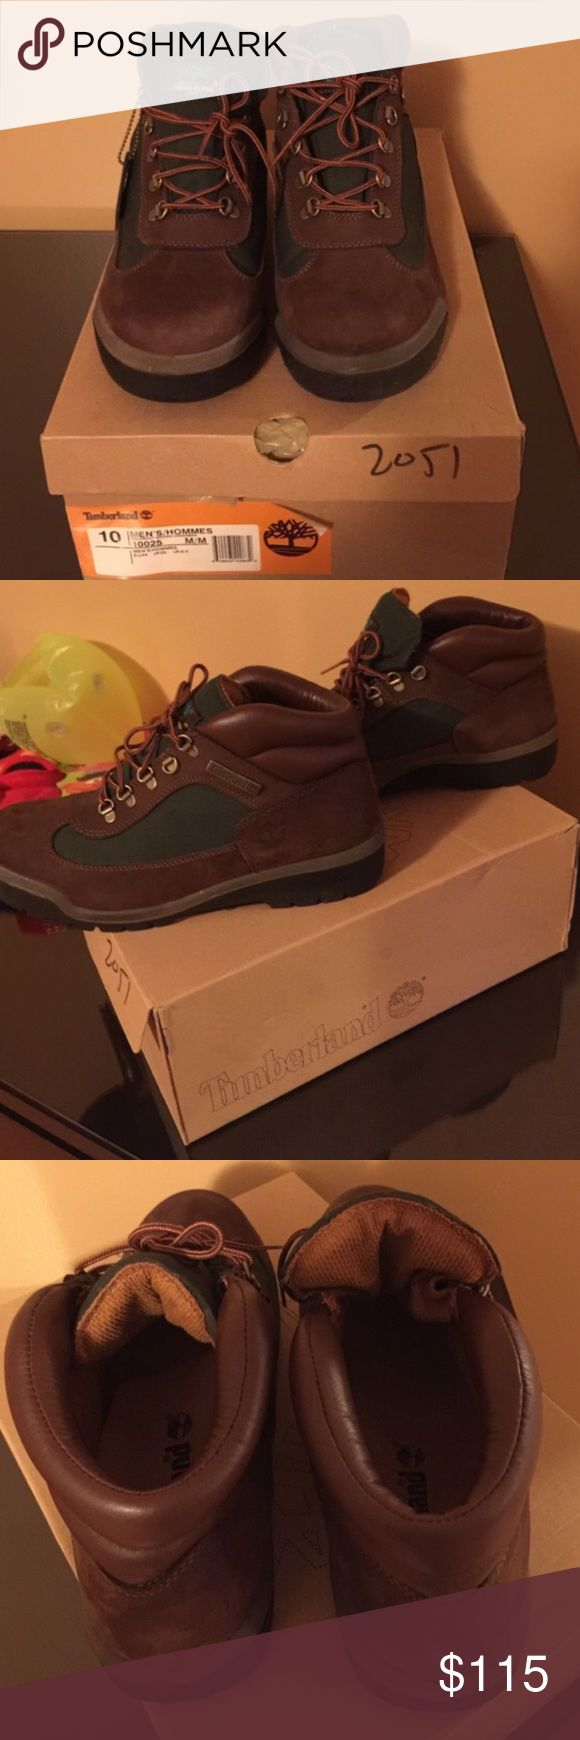 Men's timberland field boot size 10 Brand new with box size 10 brown and green Timberland Shoes Boots